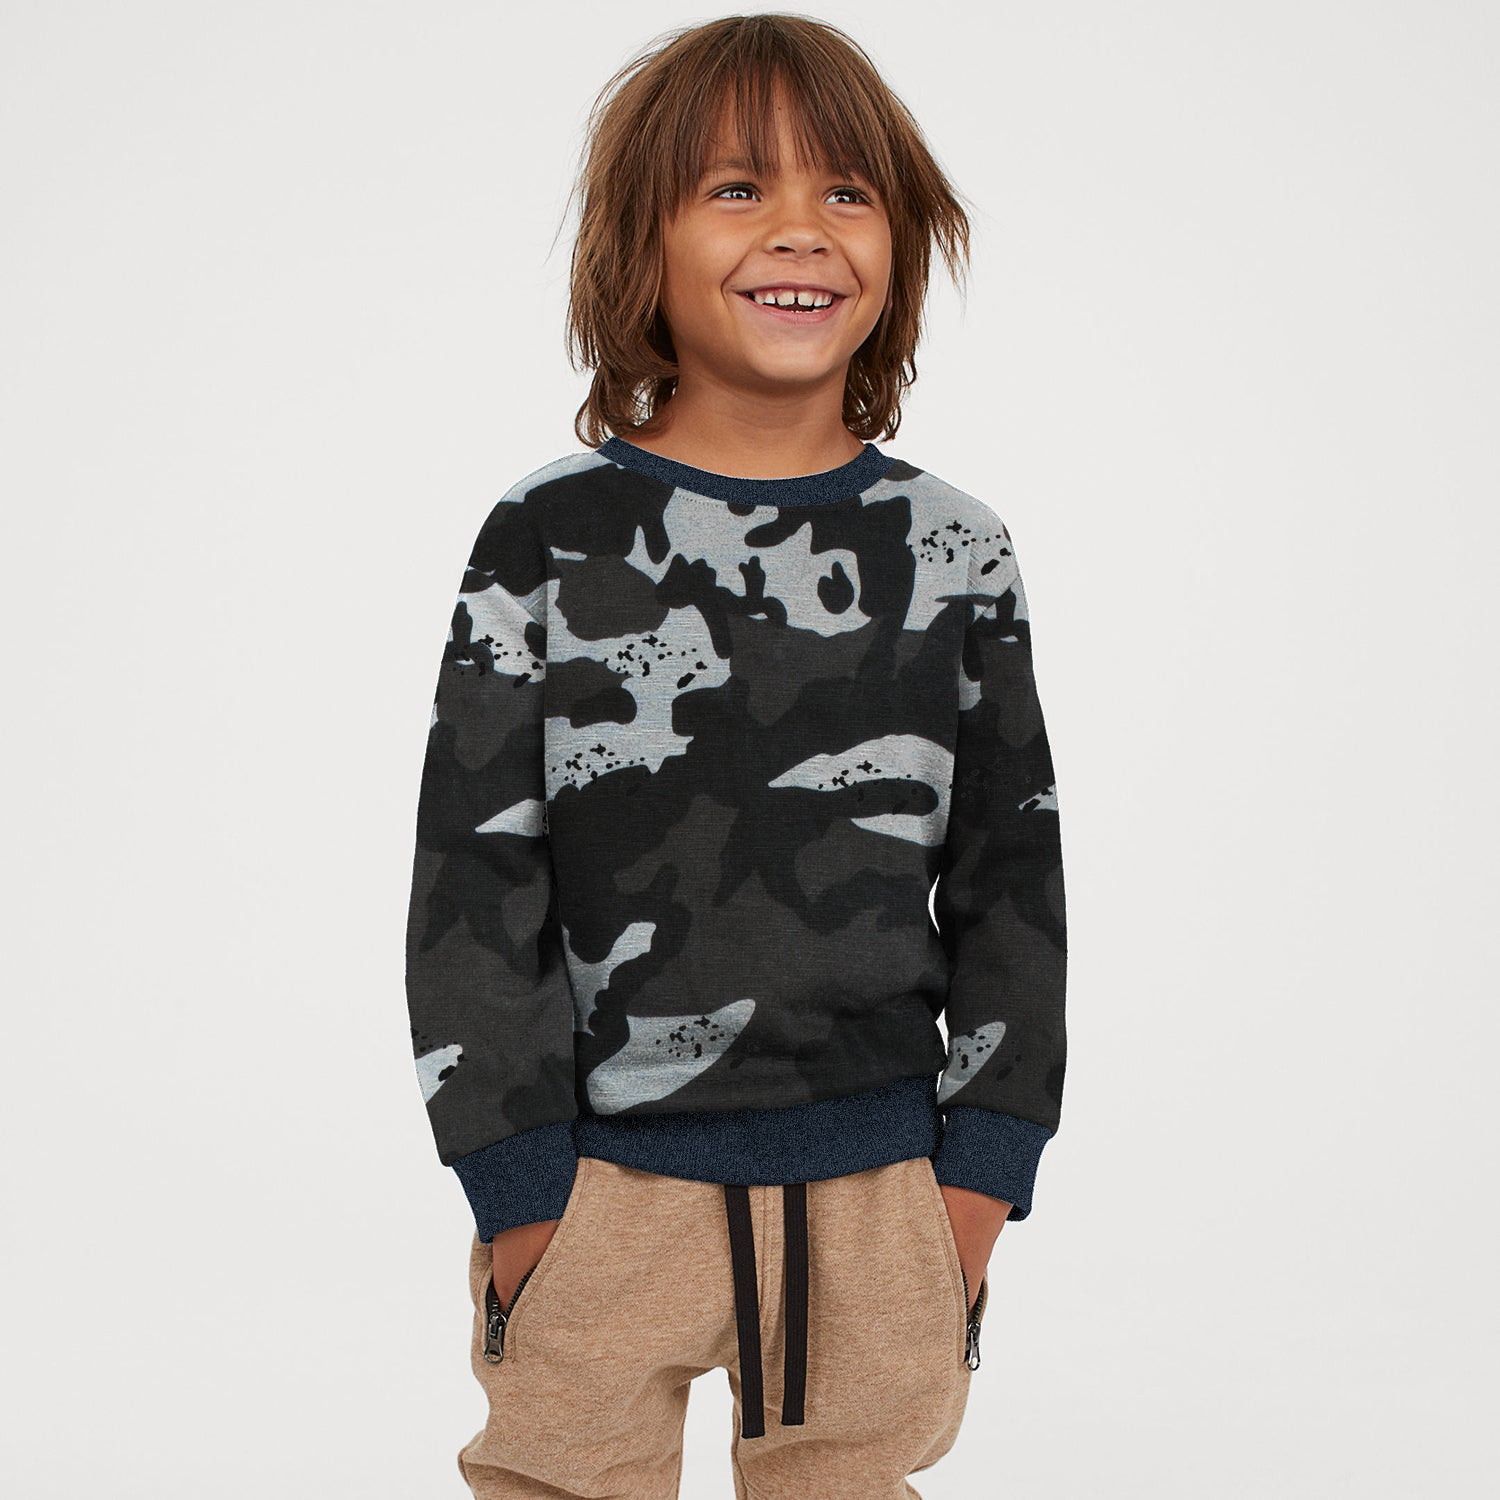 Tommy Hilfiger Fleece Crew Neck Sweatshirt For Kids-Grey with Black & Brown Camouflage-BE10708